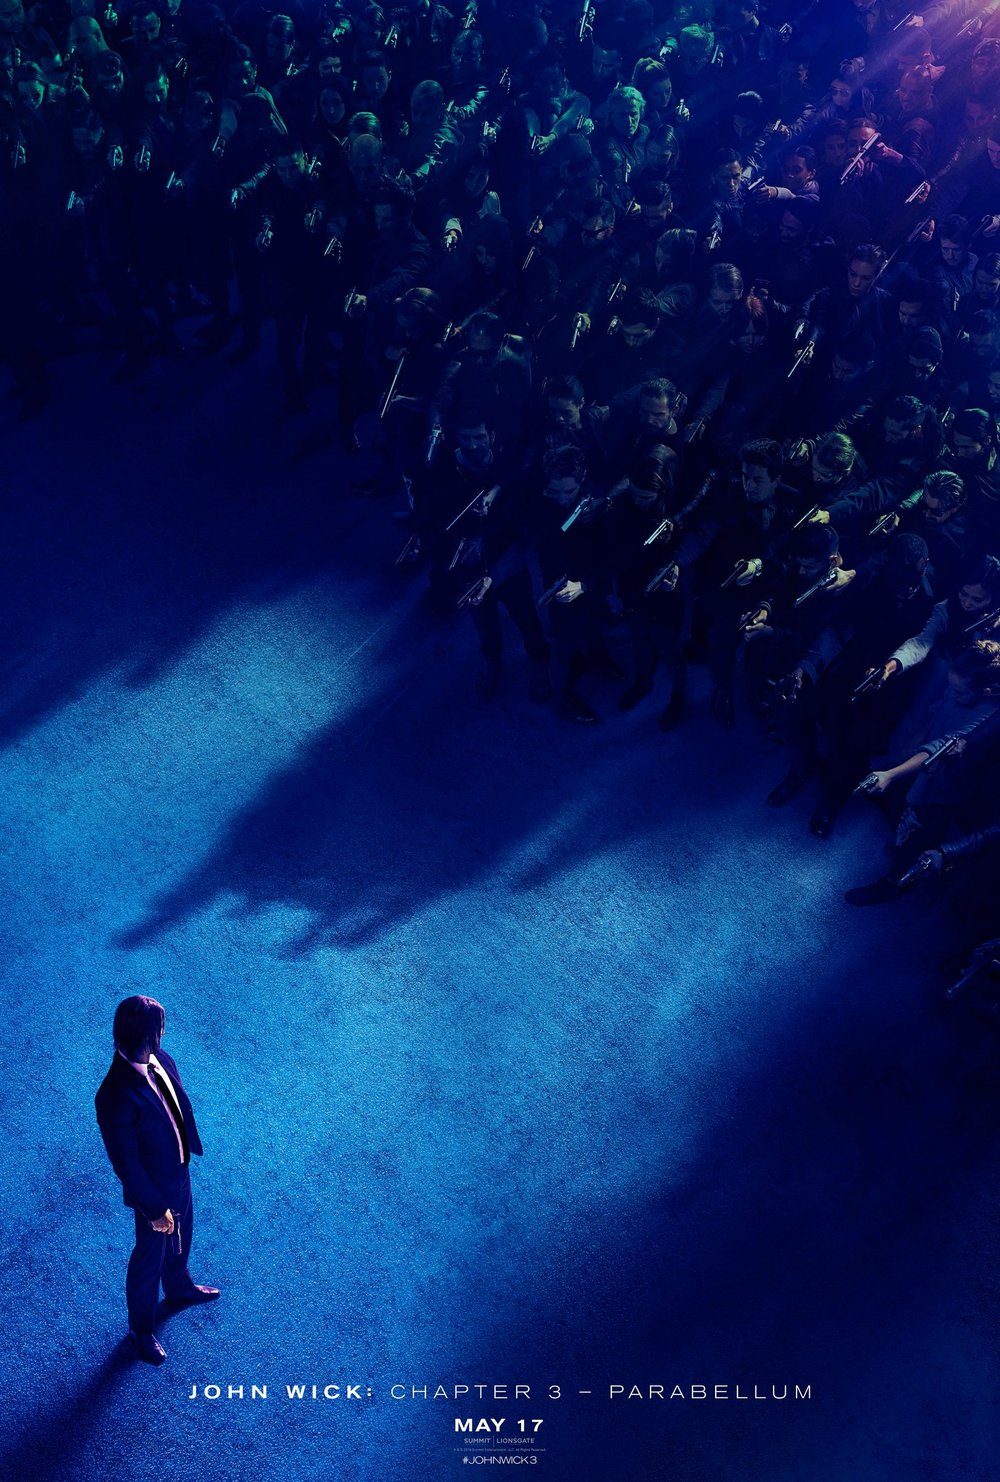 new-john-wick-chapter-3-poster-features-keanu-reeves-facing-off-with-horde-of-assassins2